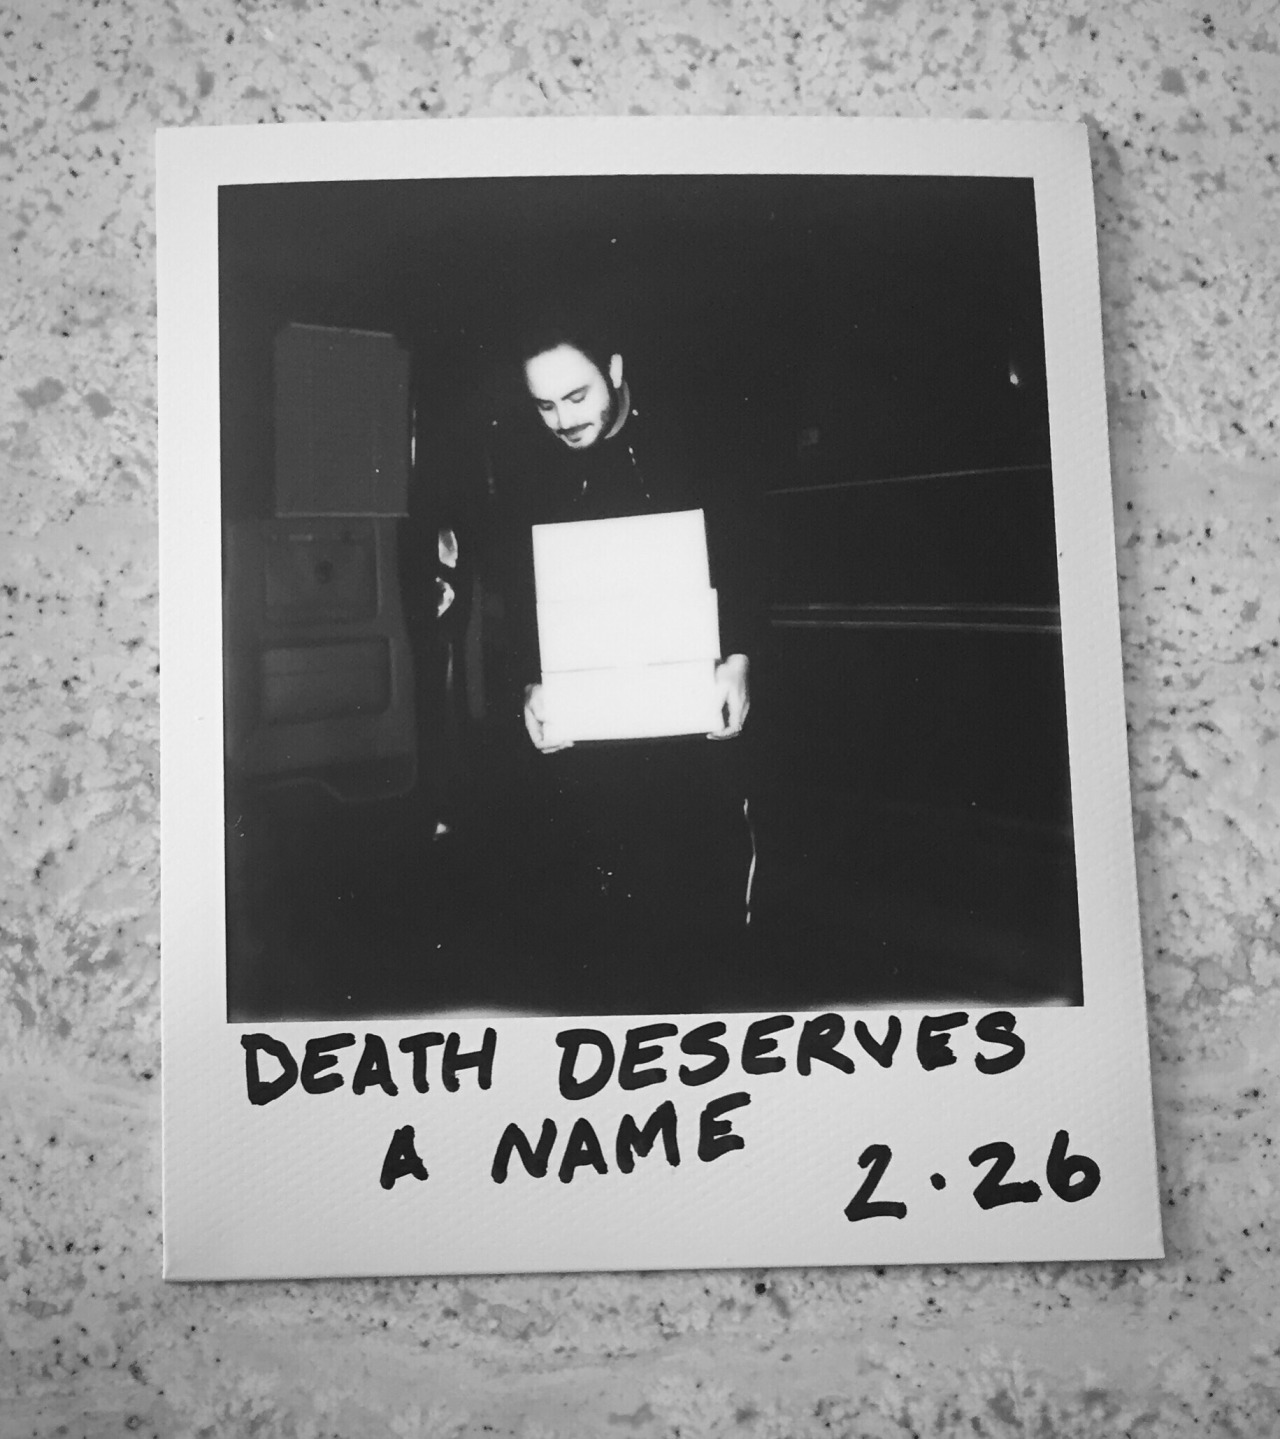 """Pre-Orders for """"DEATH DESERVES A NAME"""" are available now at cantswim.merchnow.com . We are also streaming our new song """"Come Home"""" which can be found on the pre-order site. Let us know what you think!"""